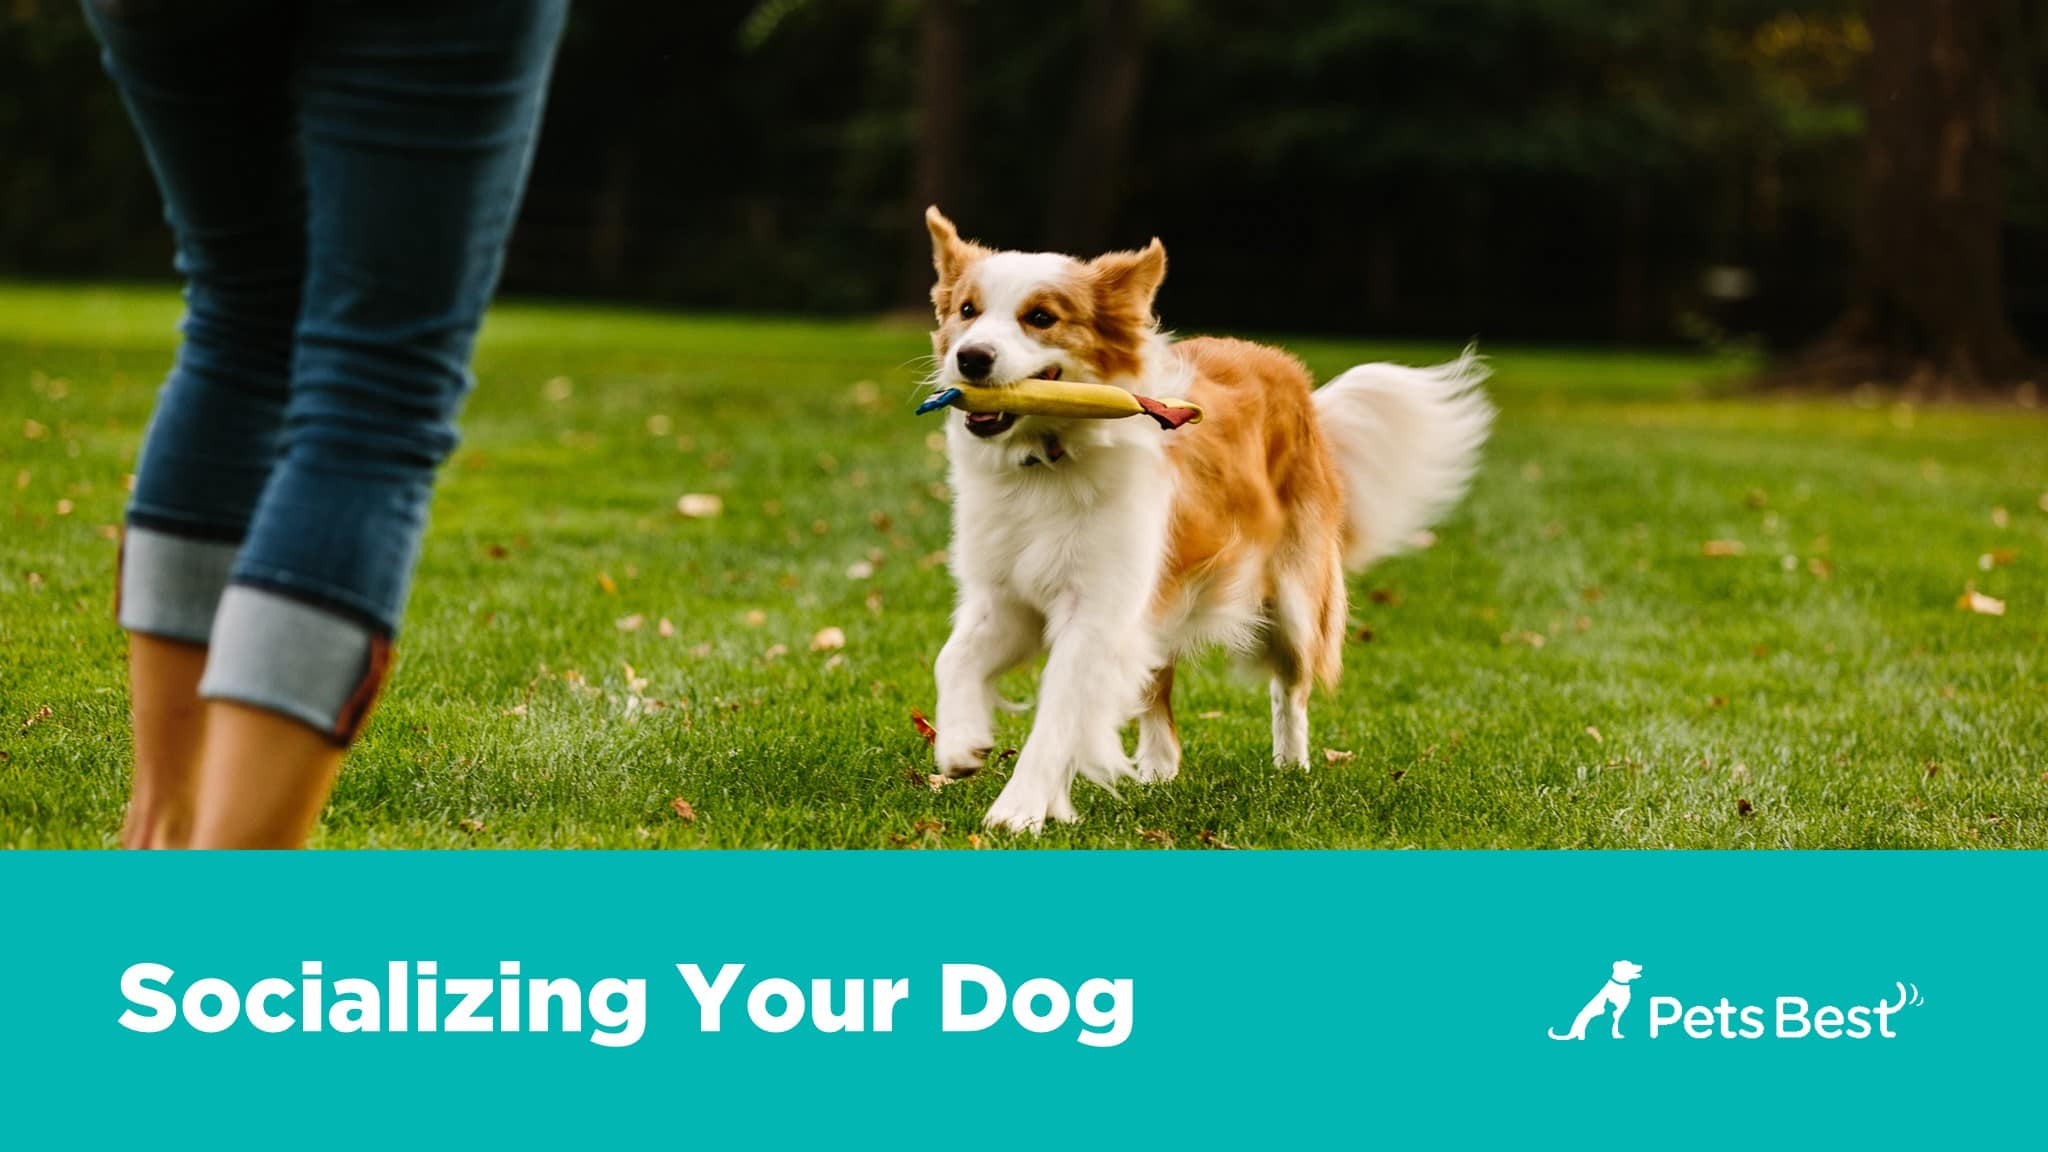 New Dog Owner's Guide| Pets Best tips for bringing your new dog home